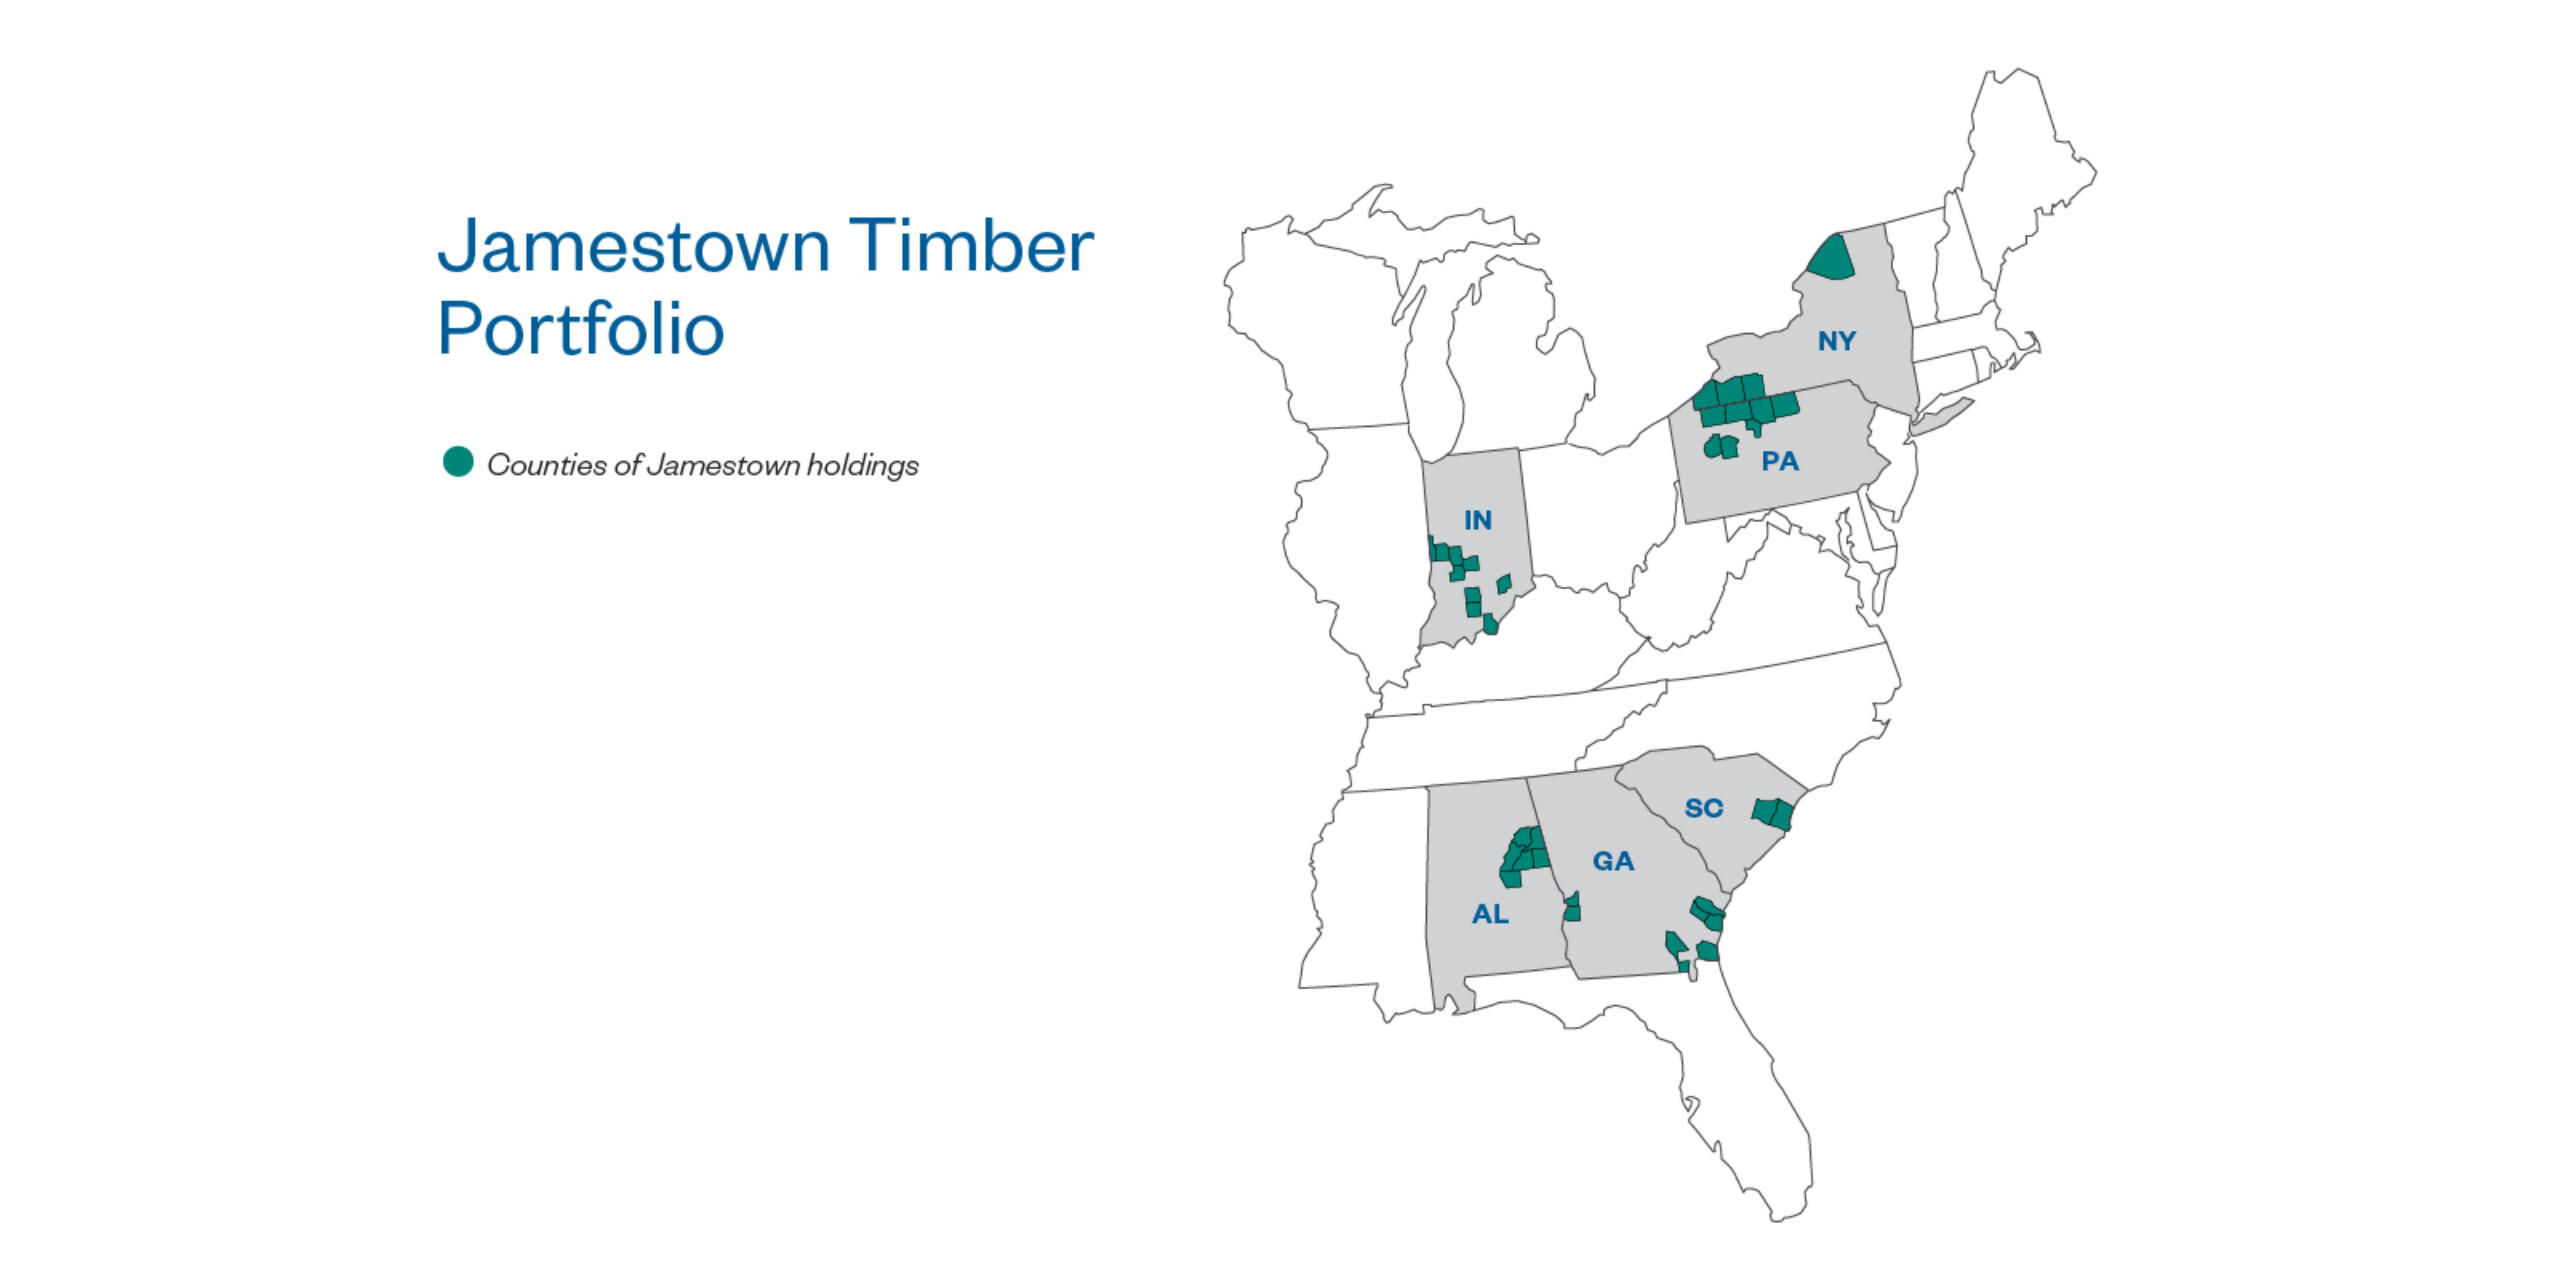 Jamestown Timber Portfolio Map 05-13-20